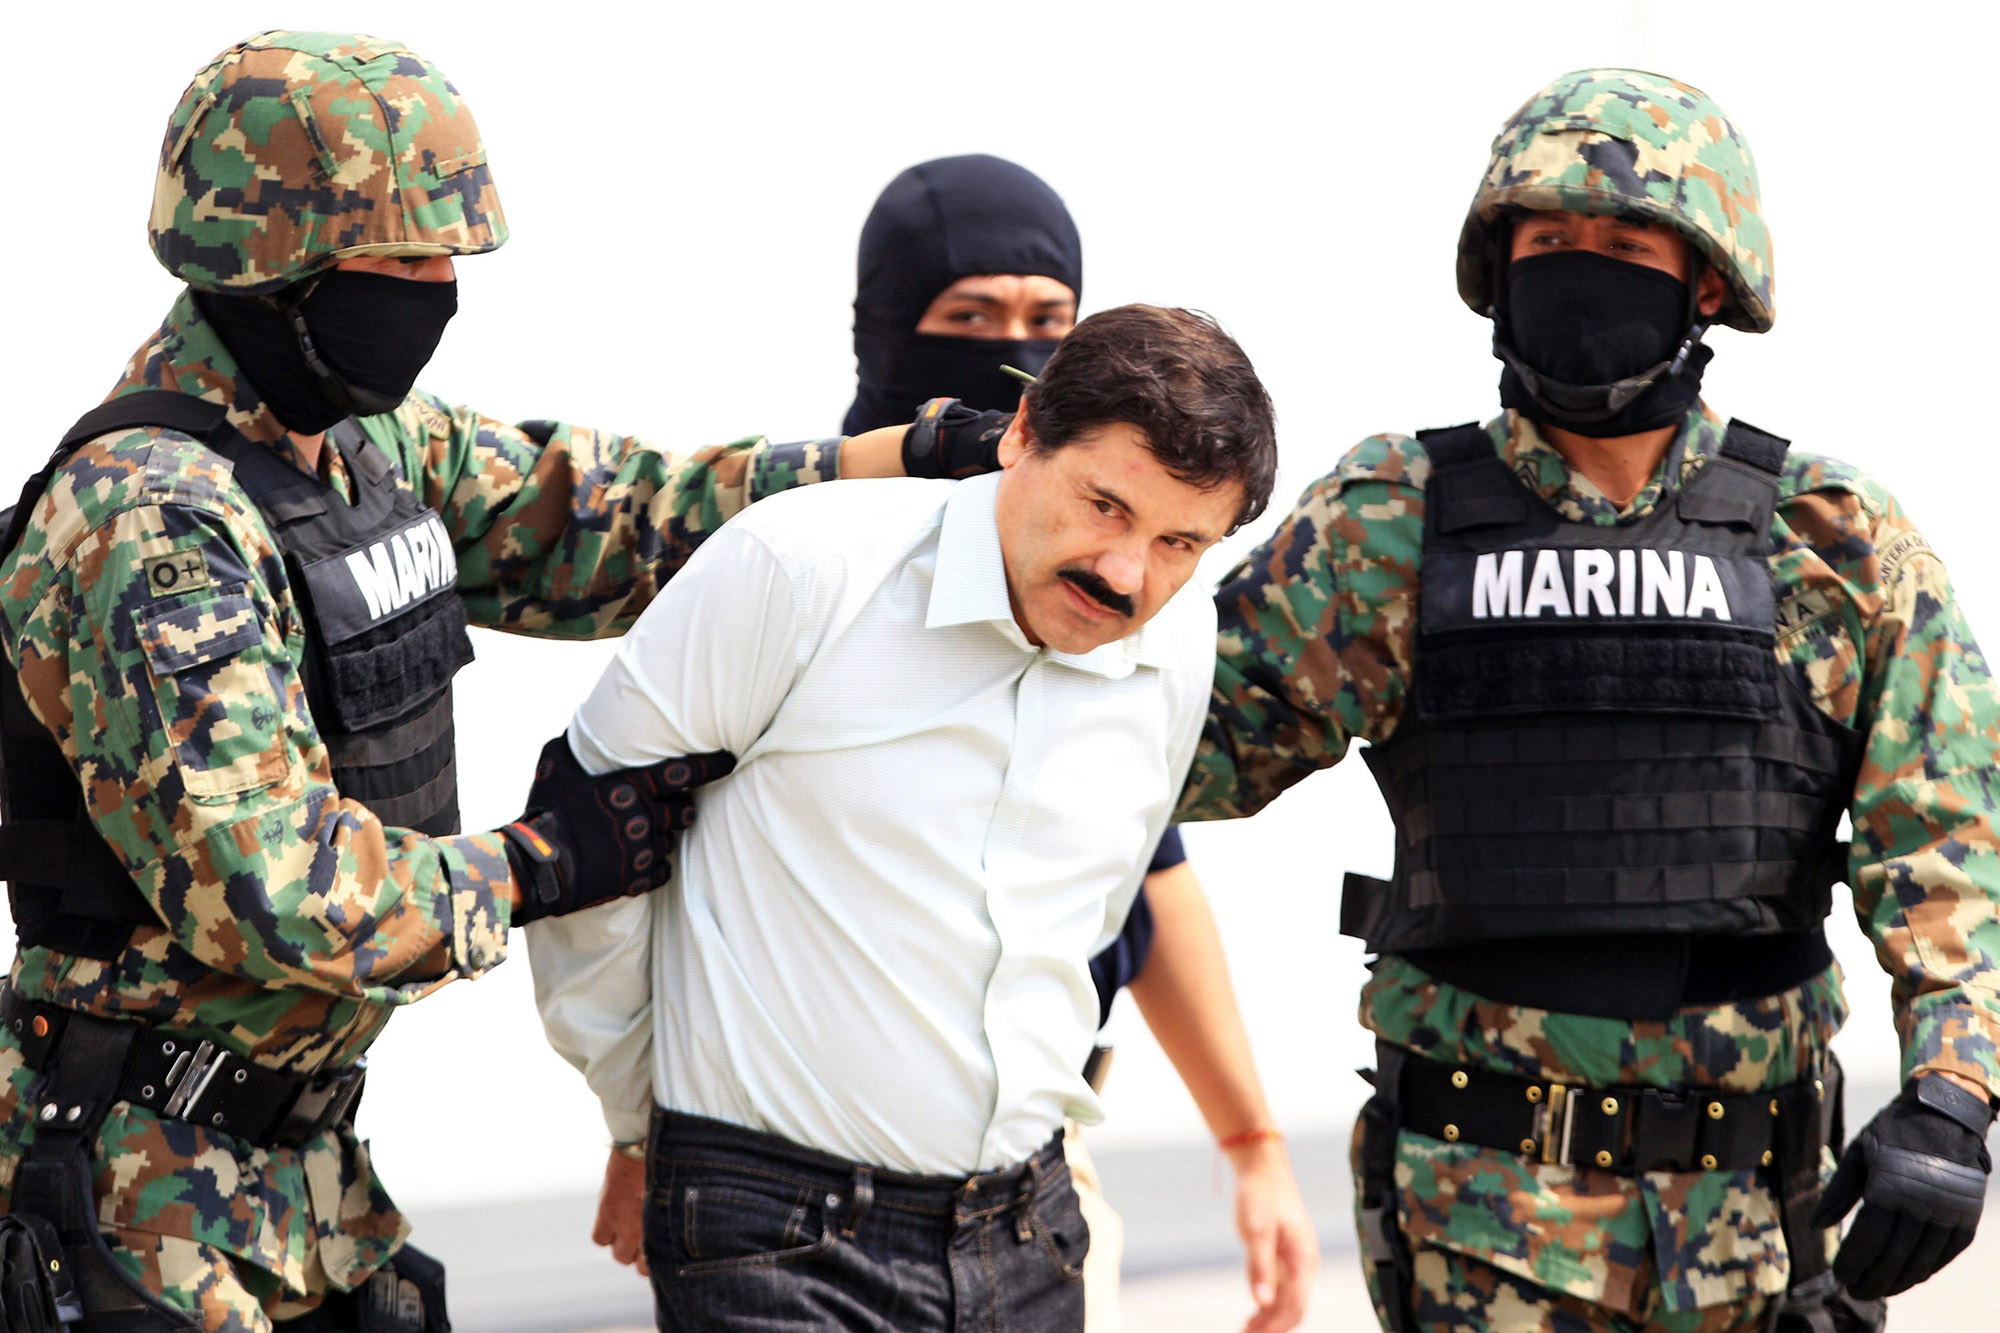 epa04096602 Mexican military hold Mexican drug lord Joaquin Guzman Loera, alias 'El Chapo' (C) at the Navy hangar in Mexico City, Mexico, 22 February 2014. The head of the Sinaloa drug cartel Joaquin 'El Chapo' Guzman was arrested on 22 February 2014 in Mazatlan in the Mexican state of Sinaloa. Reputed to be 'the most powerful drug trafficker in the world' by the United States, Guzman had been on the run for years.  EPA/MARIO GUZMAN